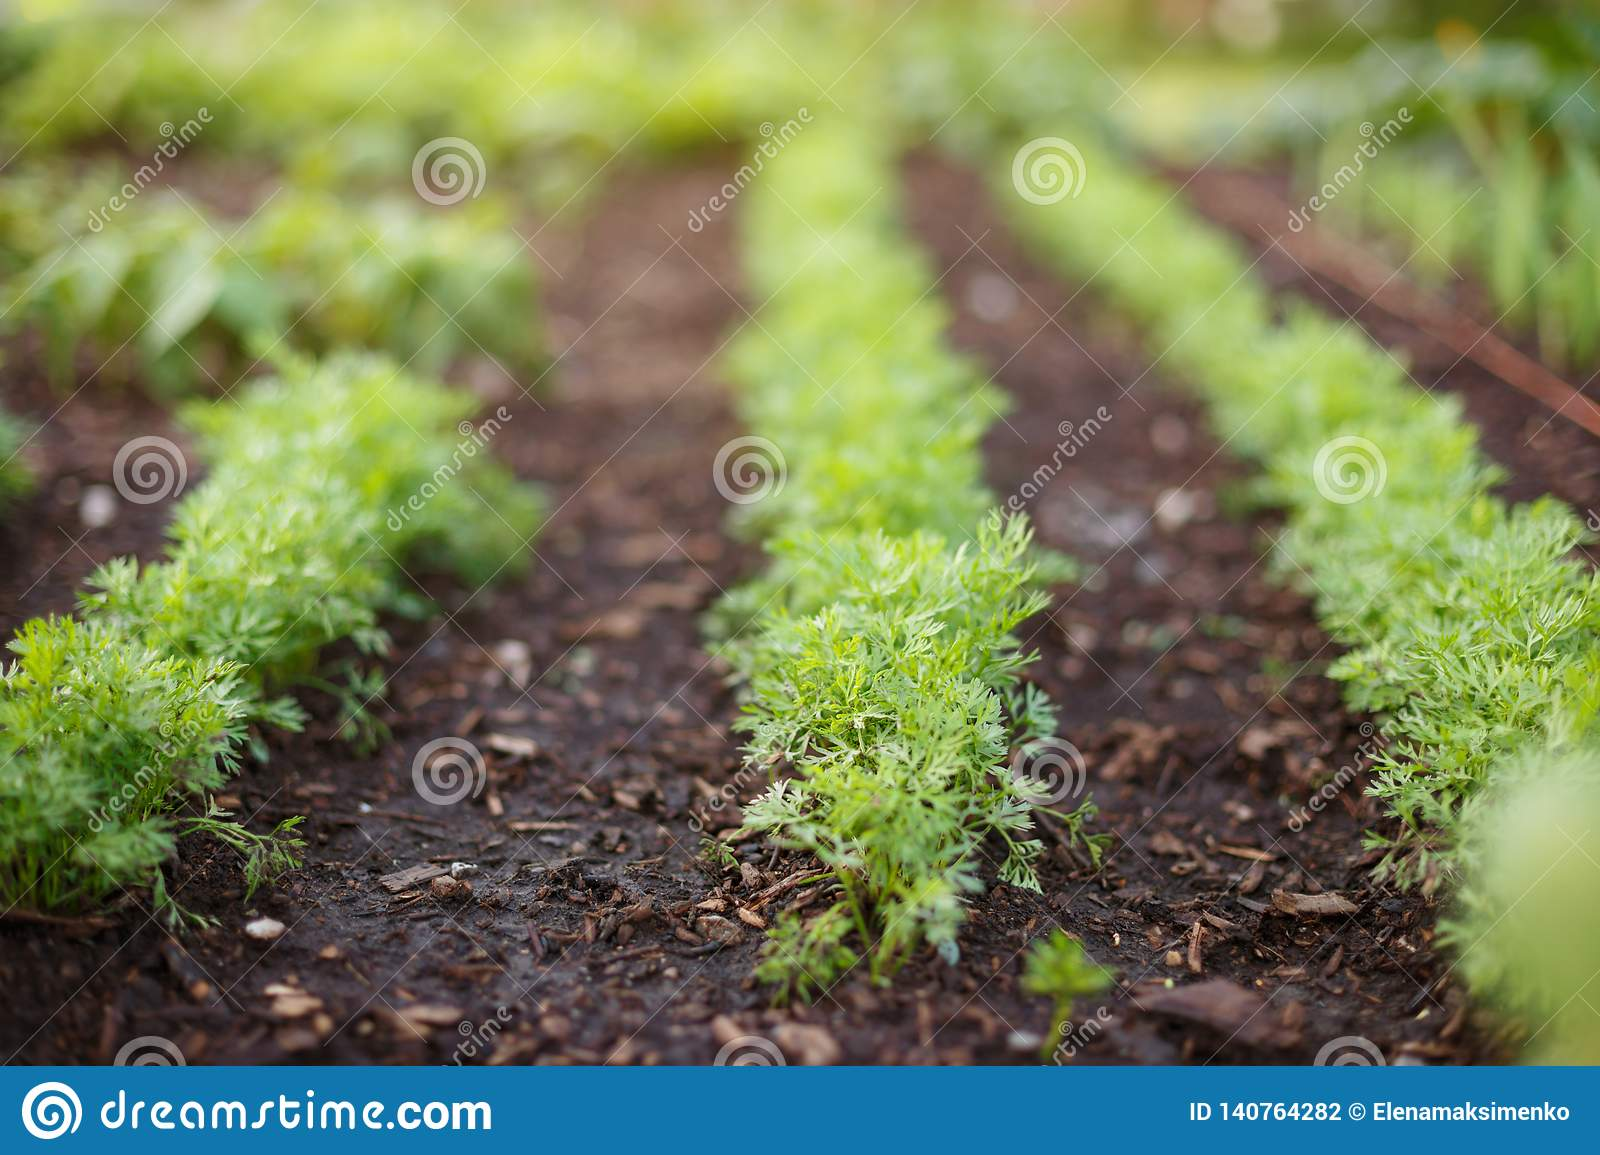 Sprouts of young carrots grow on a garden bed.